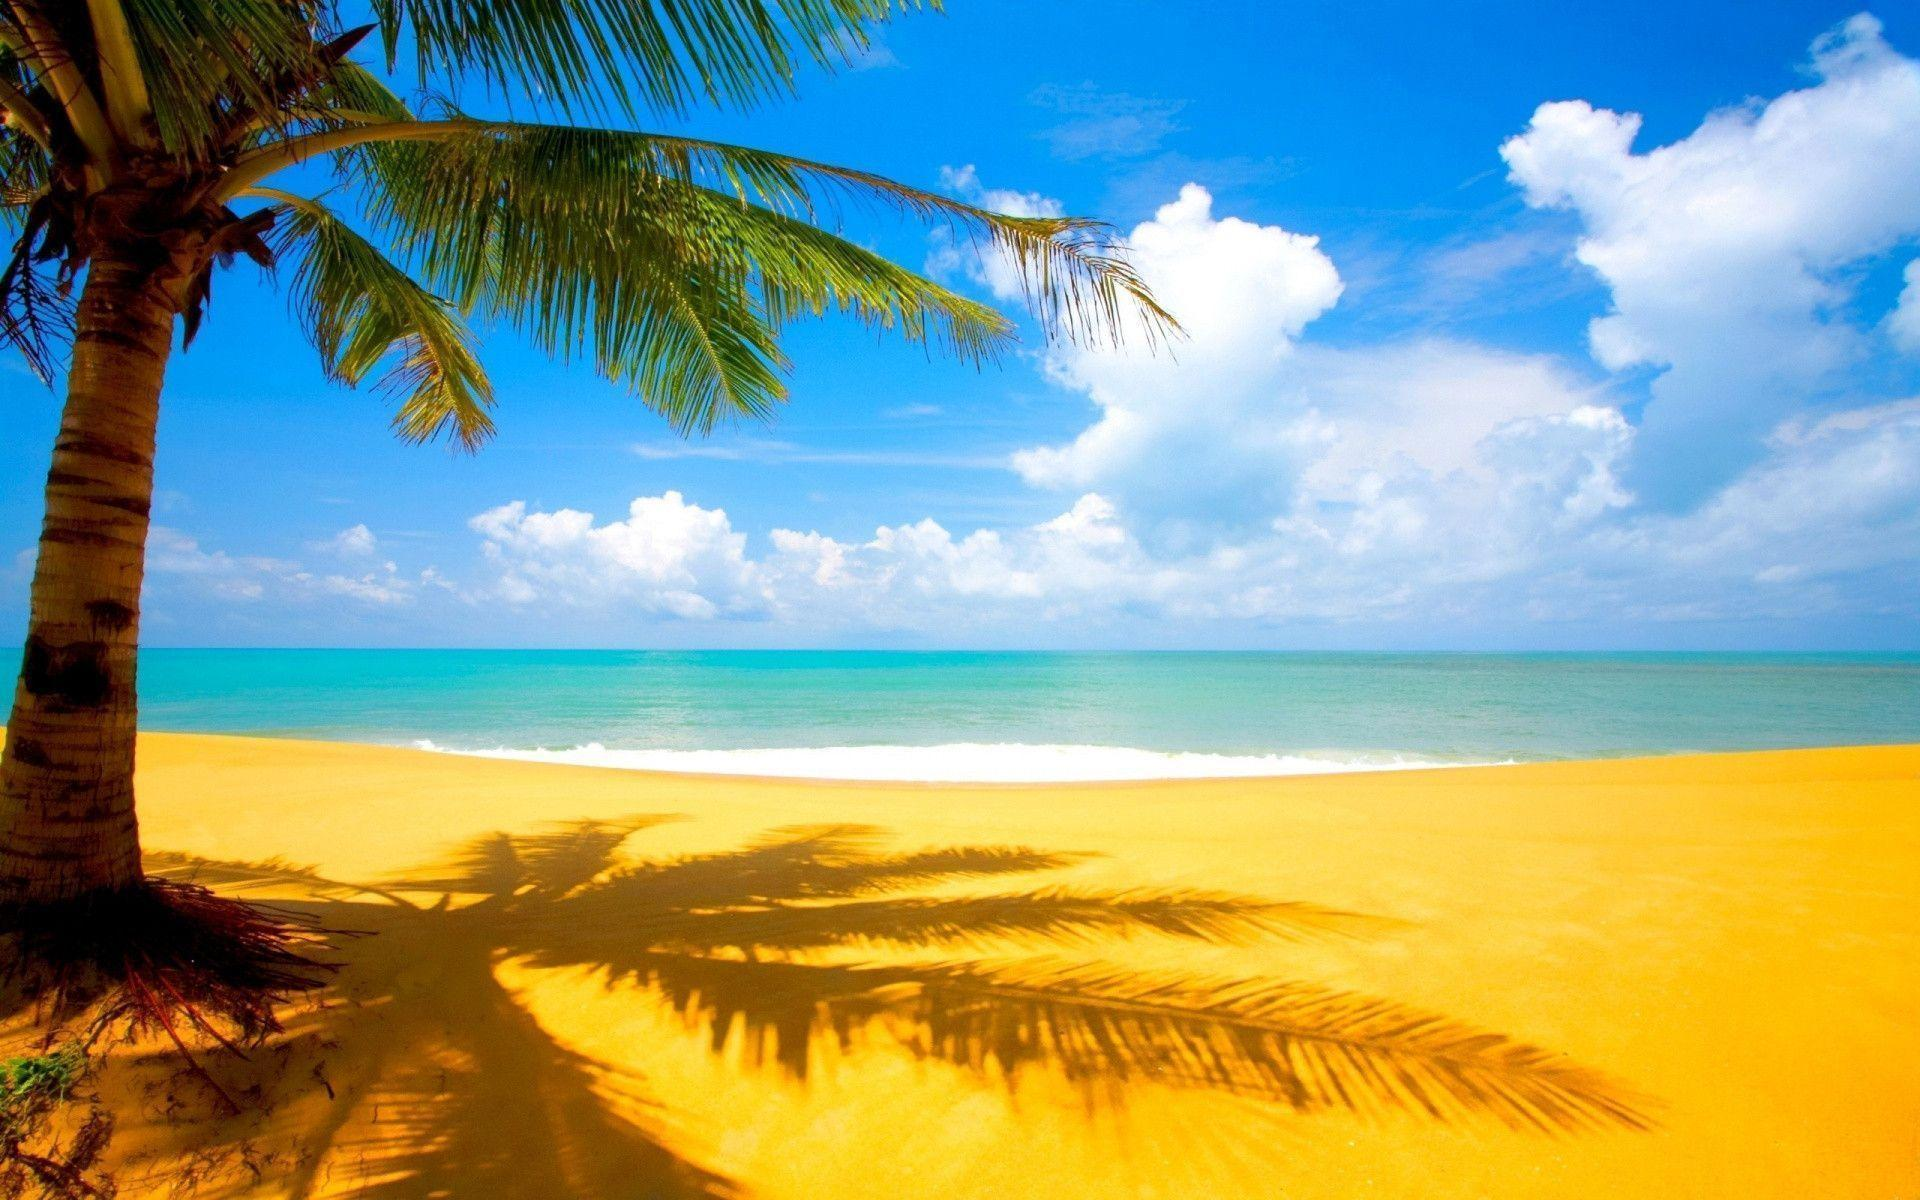 Wallpapers For > Hawaiian Beach Backgrounds